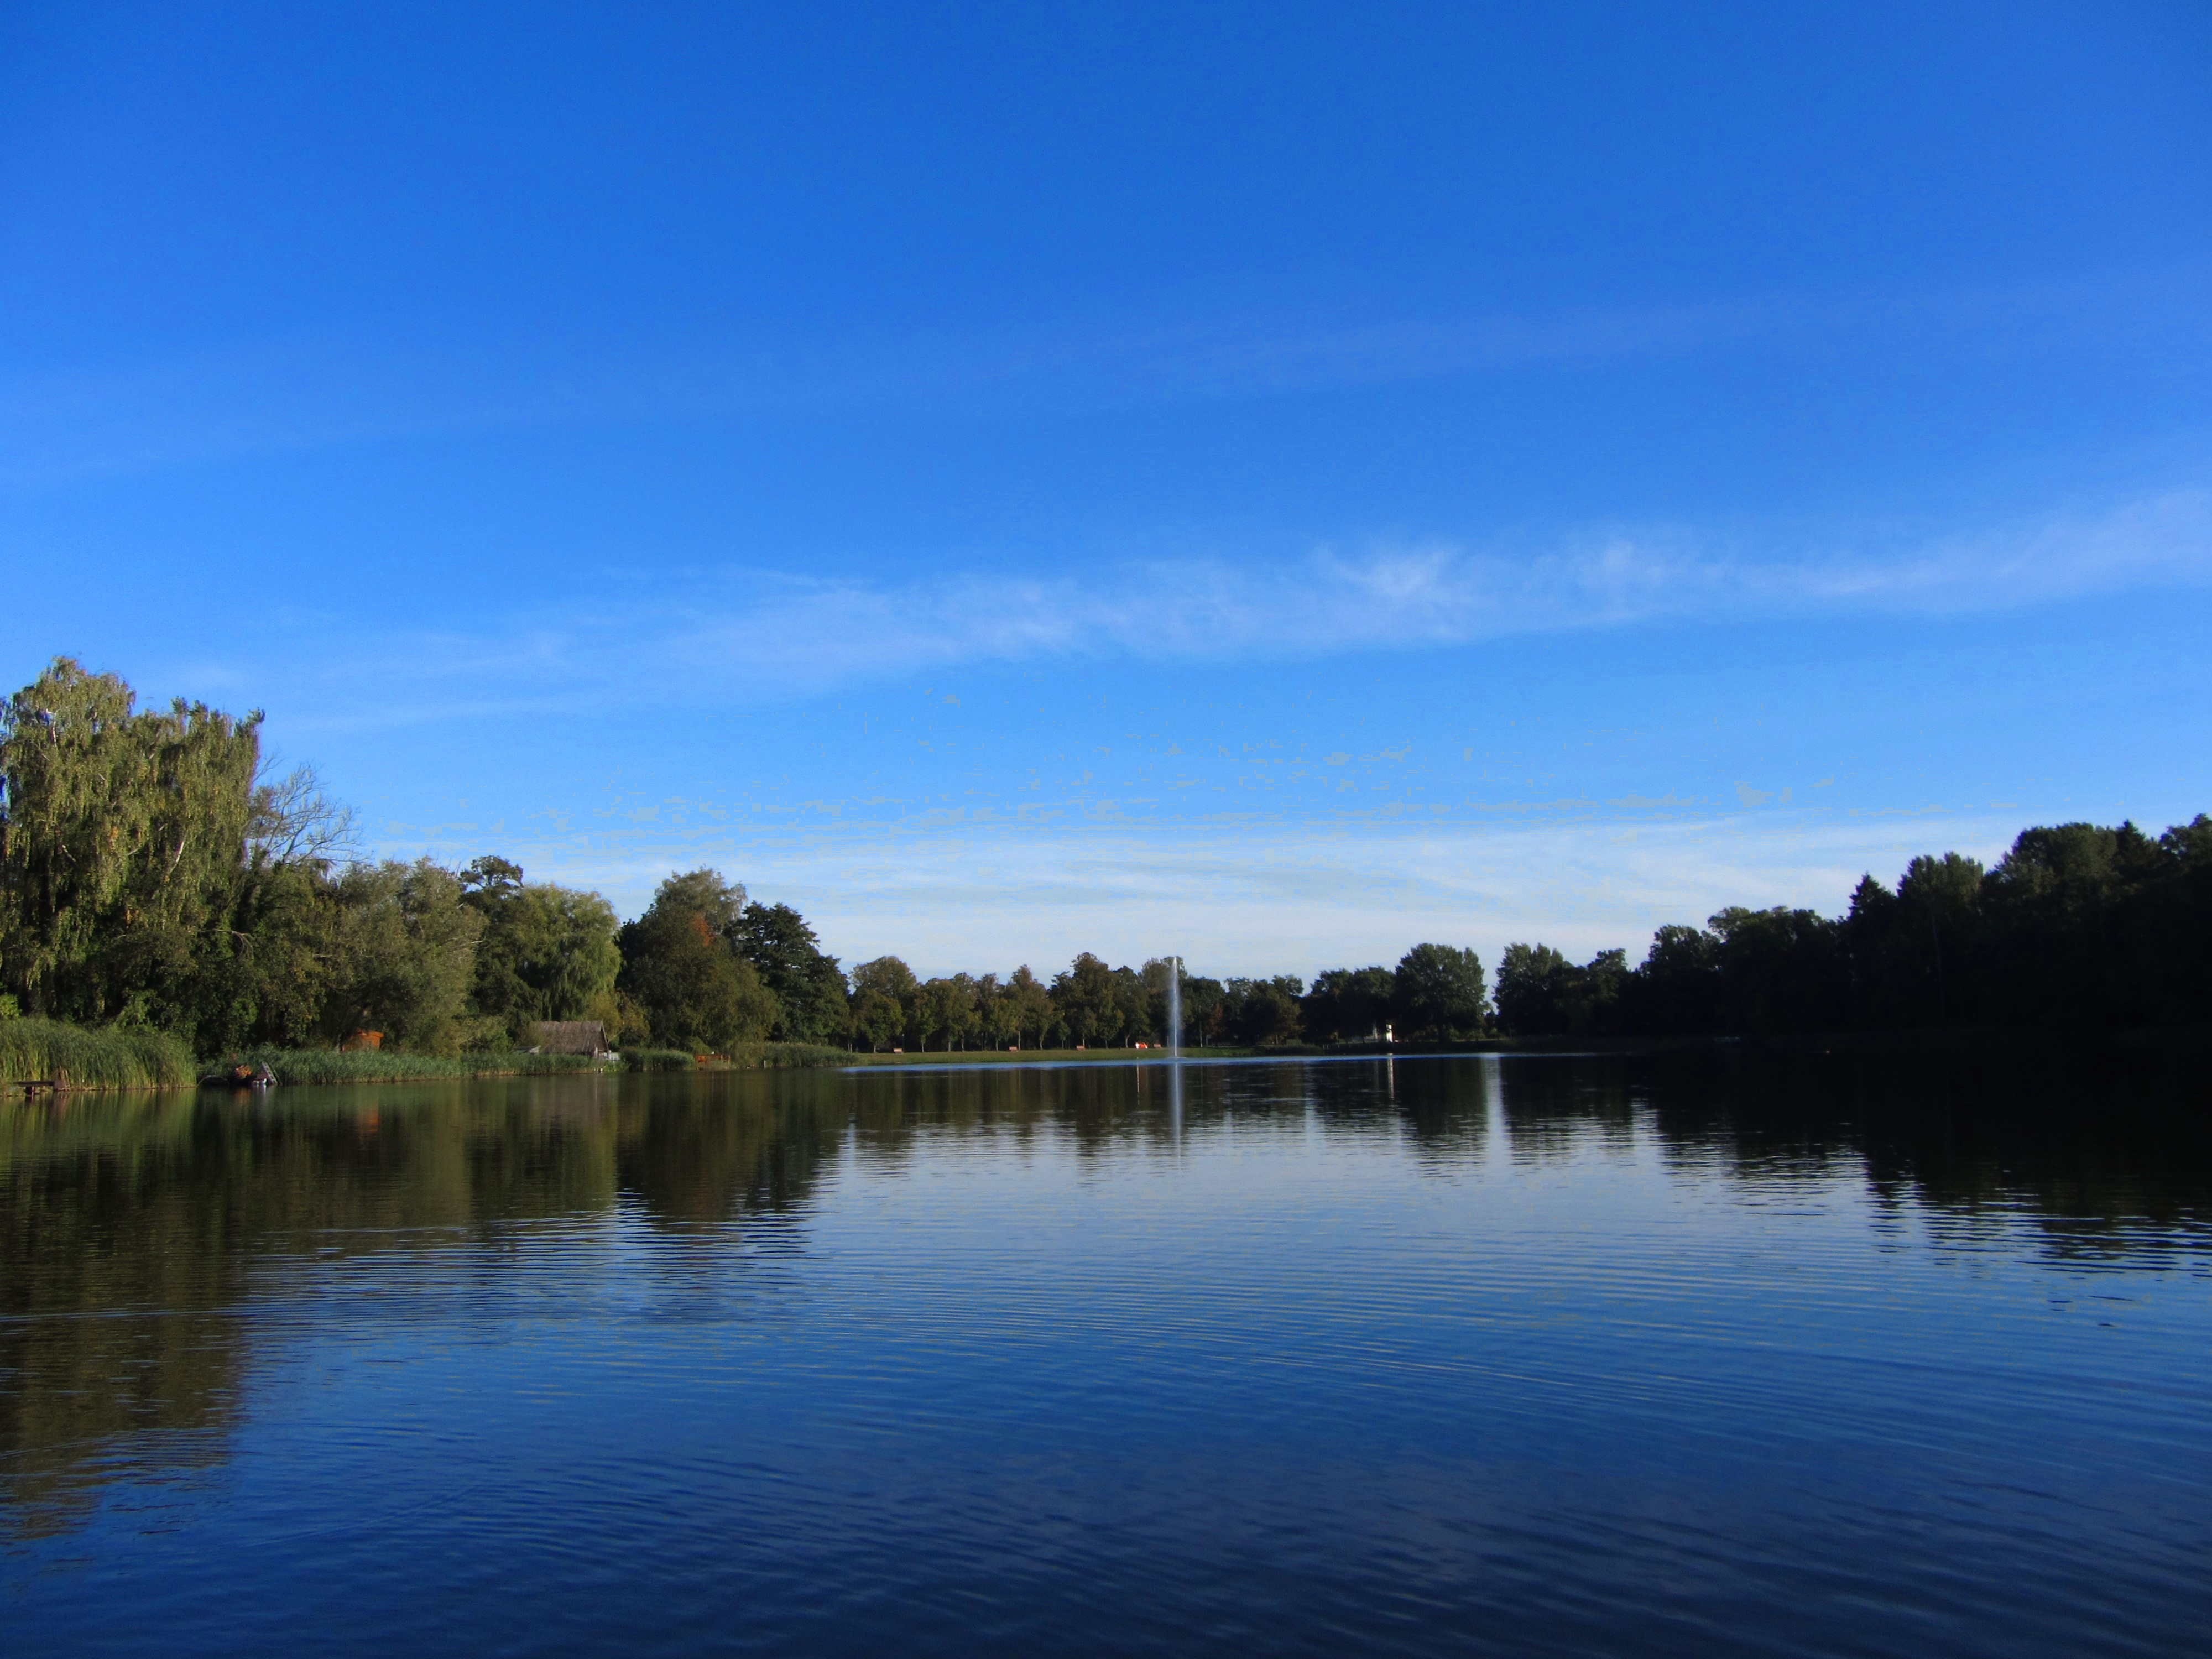 Klostersee